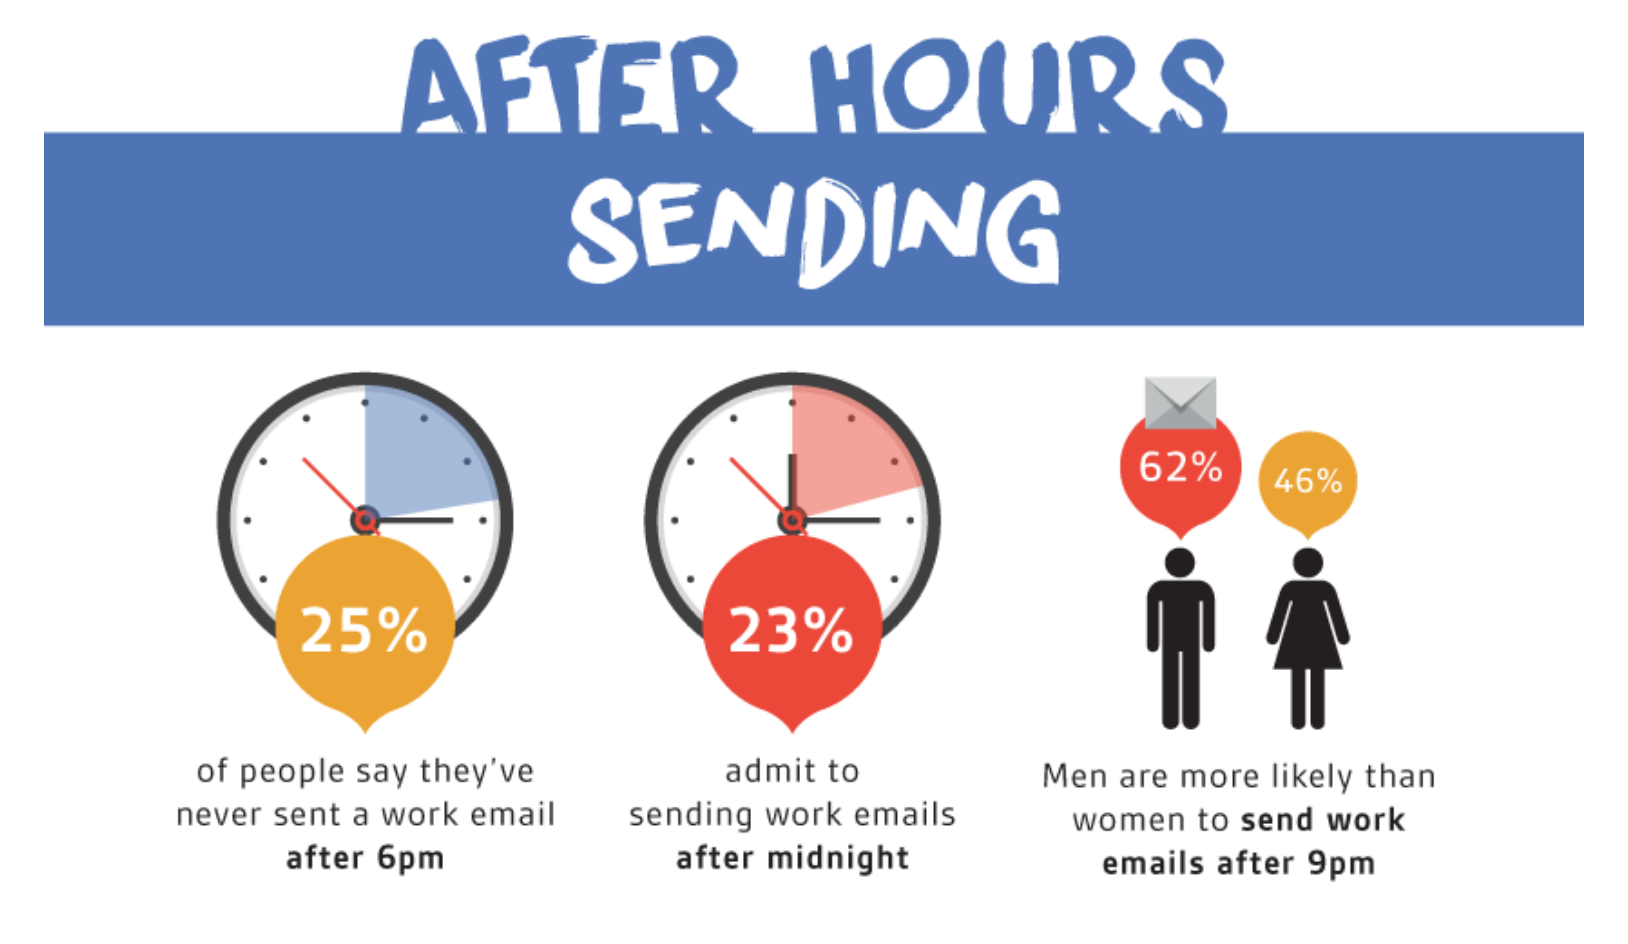 After hours sending infographic